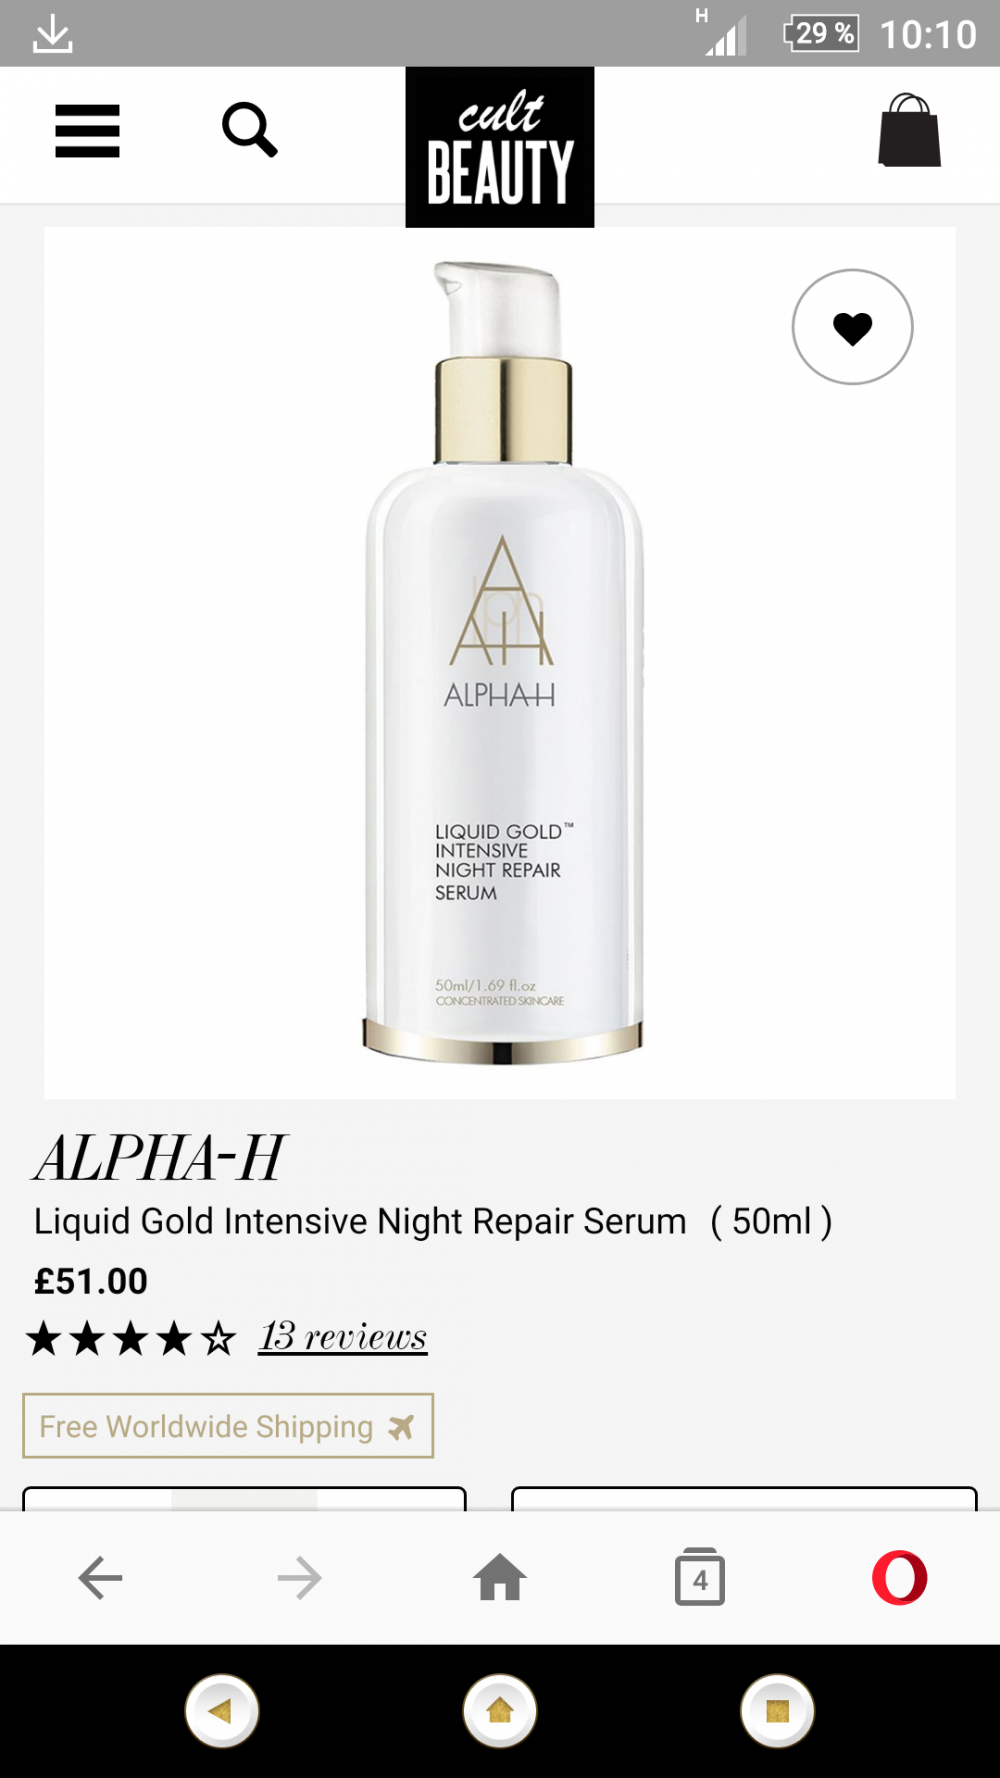 Ночная сыворотка ALPHA-H Liquid Gold Intensive Night Repair Serum( 50ml )